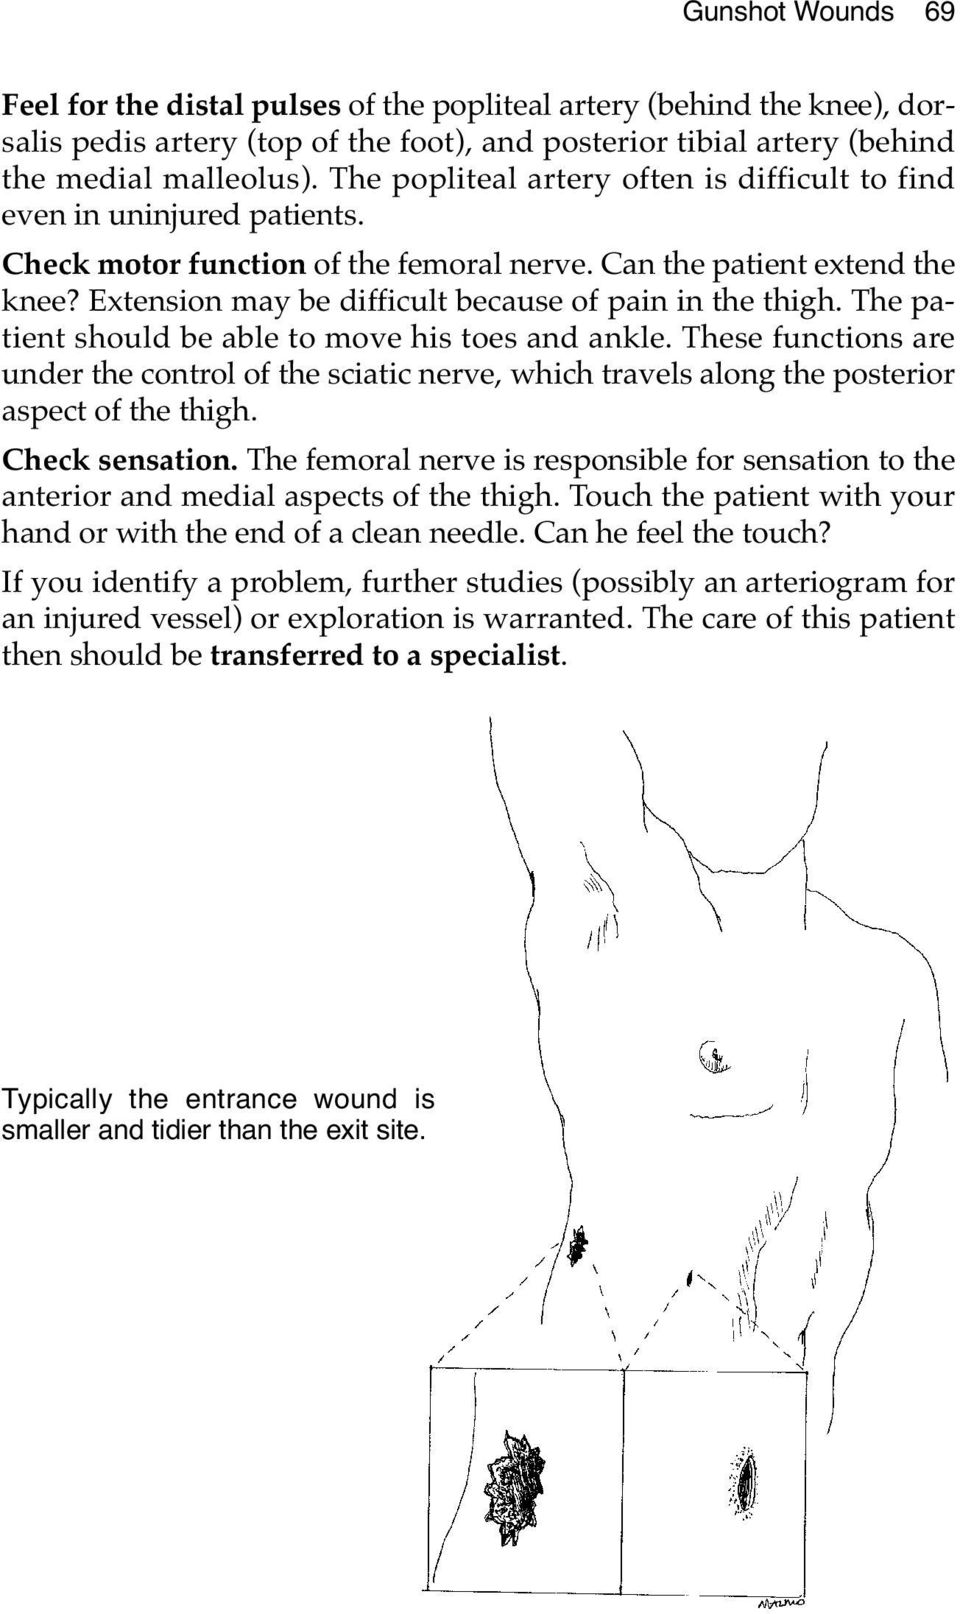 Extension may be difficult because of pain in the thigh. The patient should be able to move his toes and ankle.